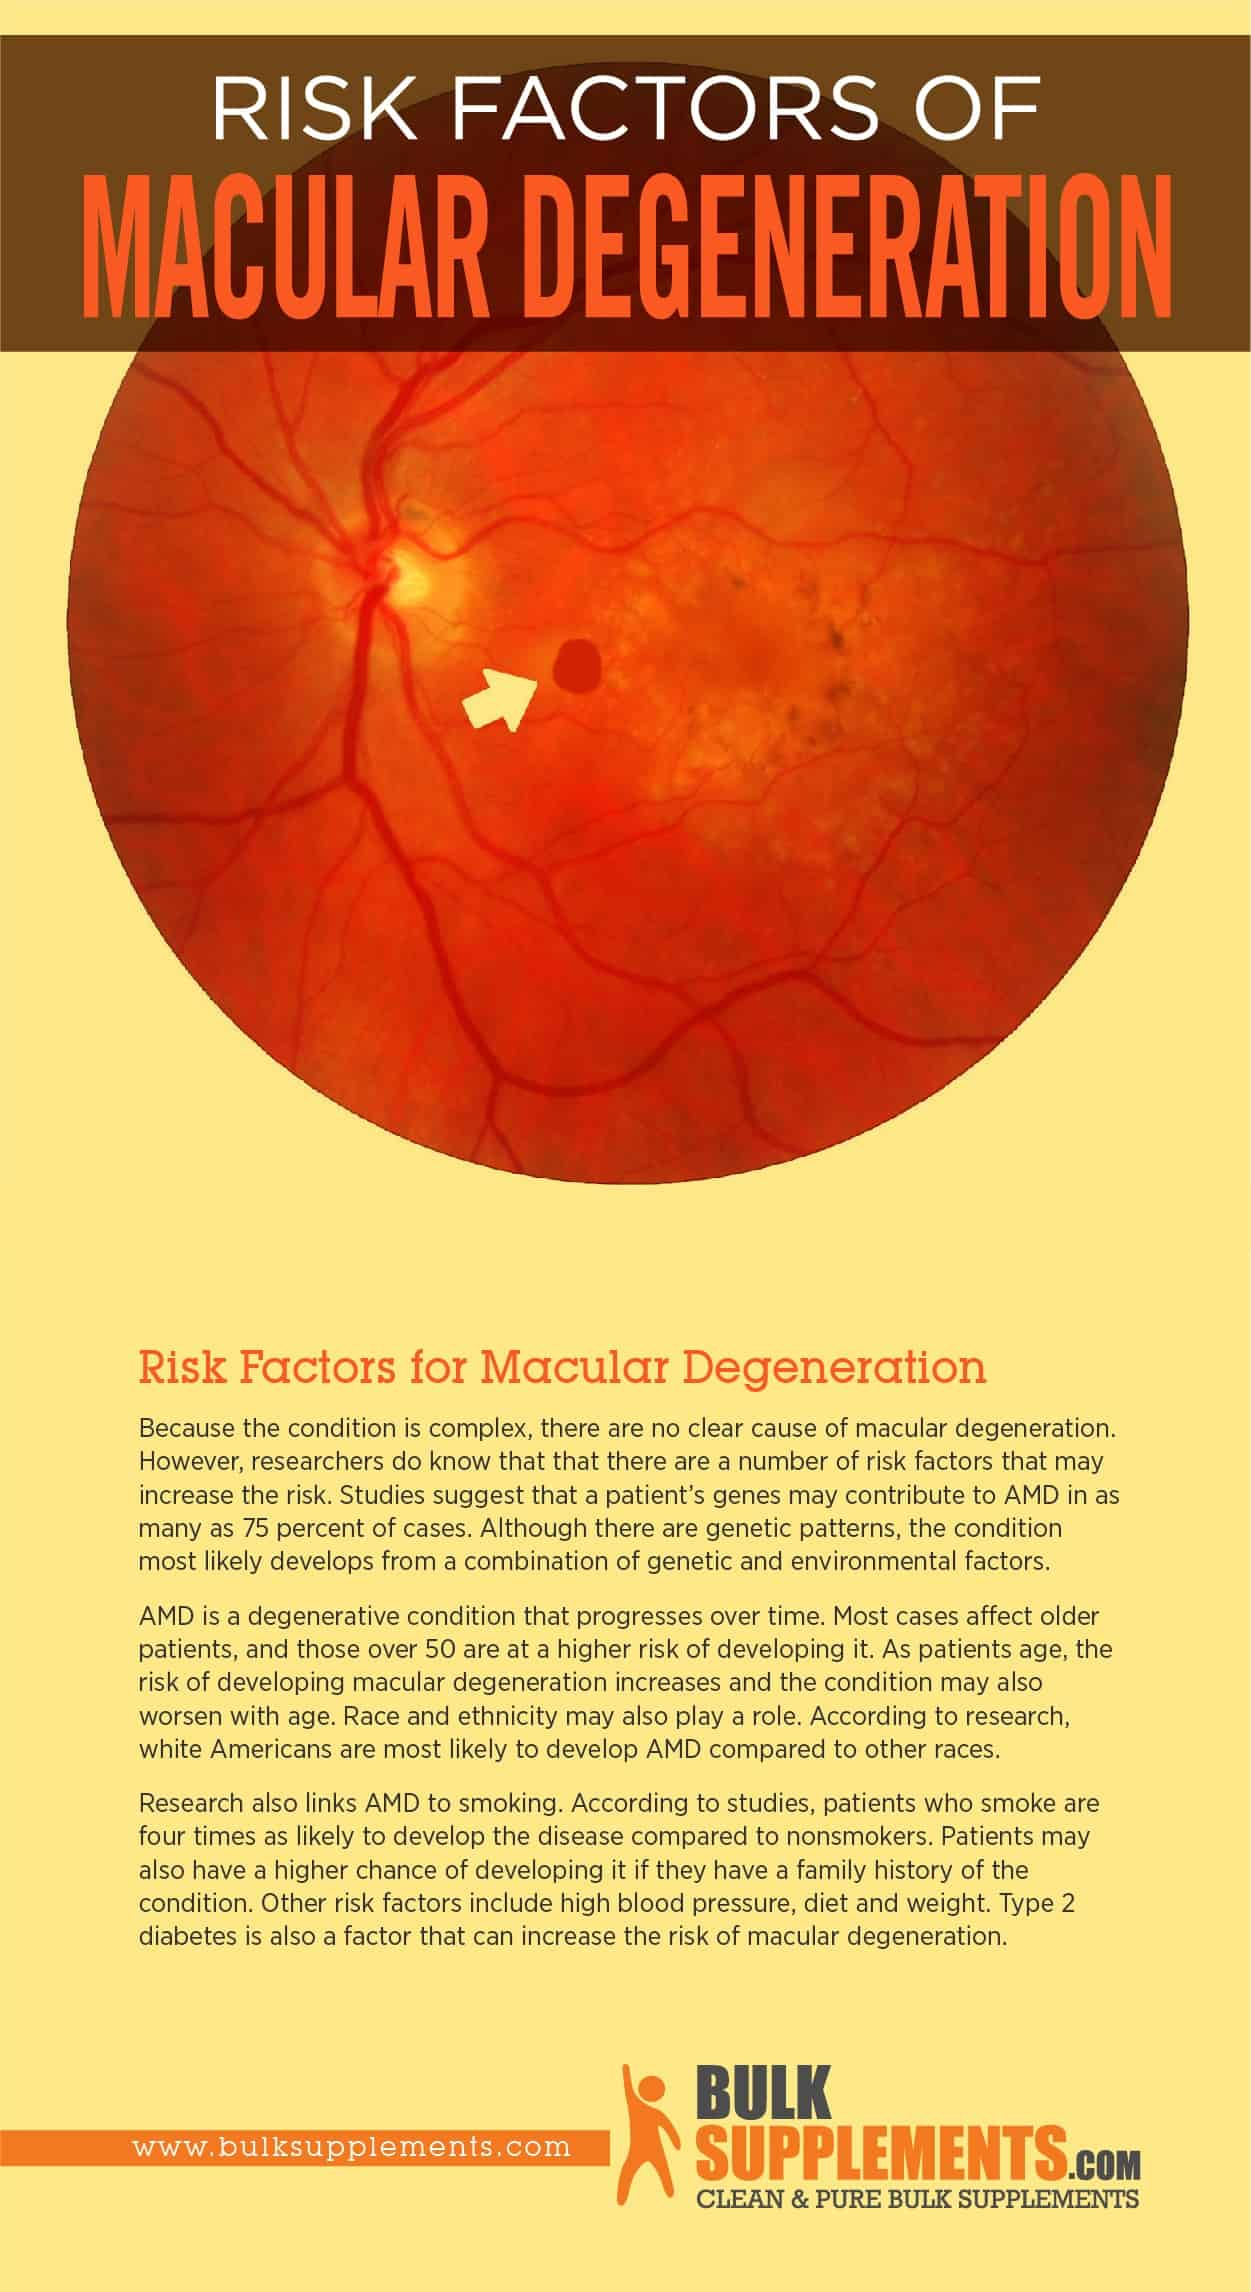 Risk Factors of Macular Degeneration